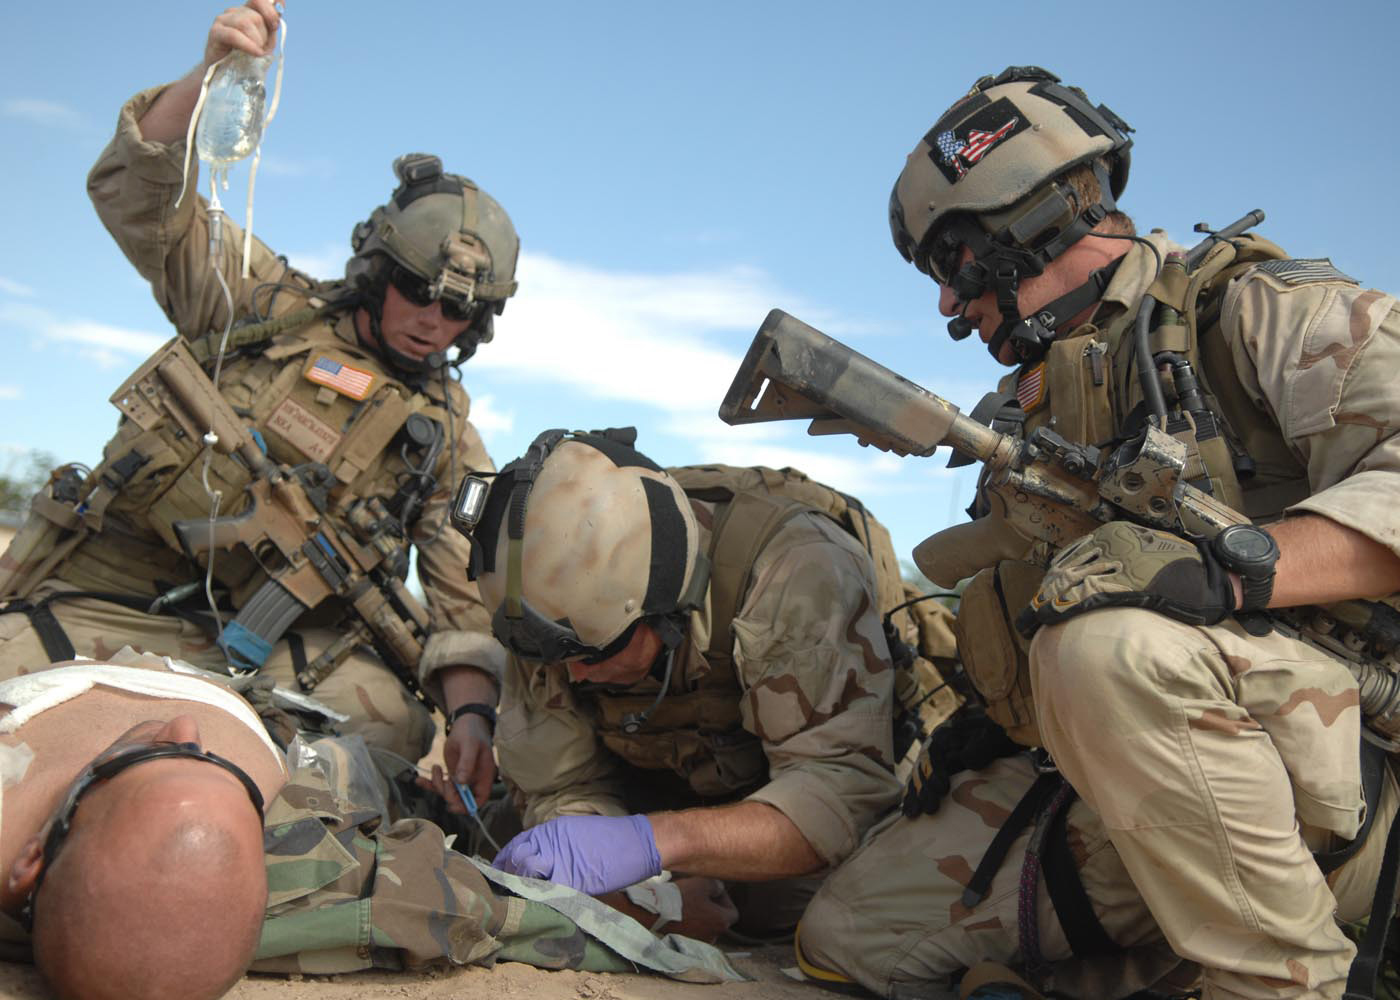 Field medic saving the life of an injured soldier